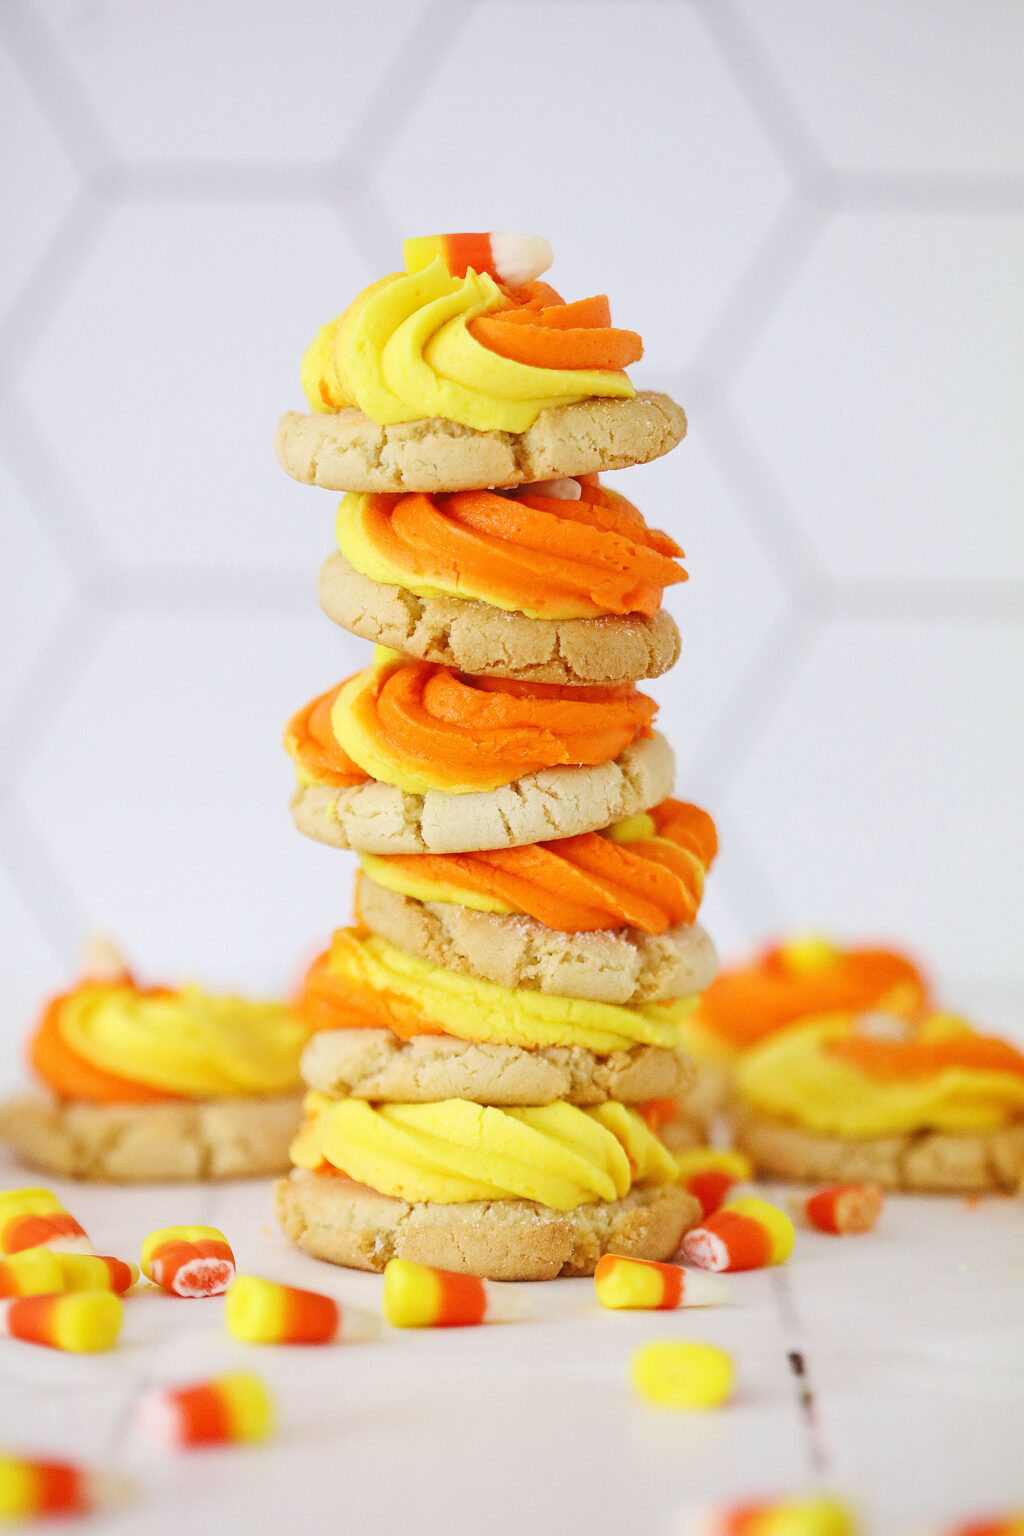 candy corn cookies stacked on top of each other on a white table